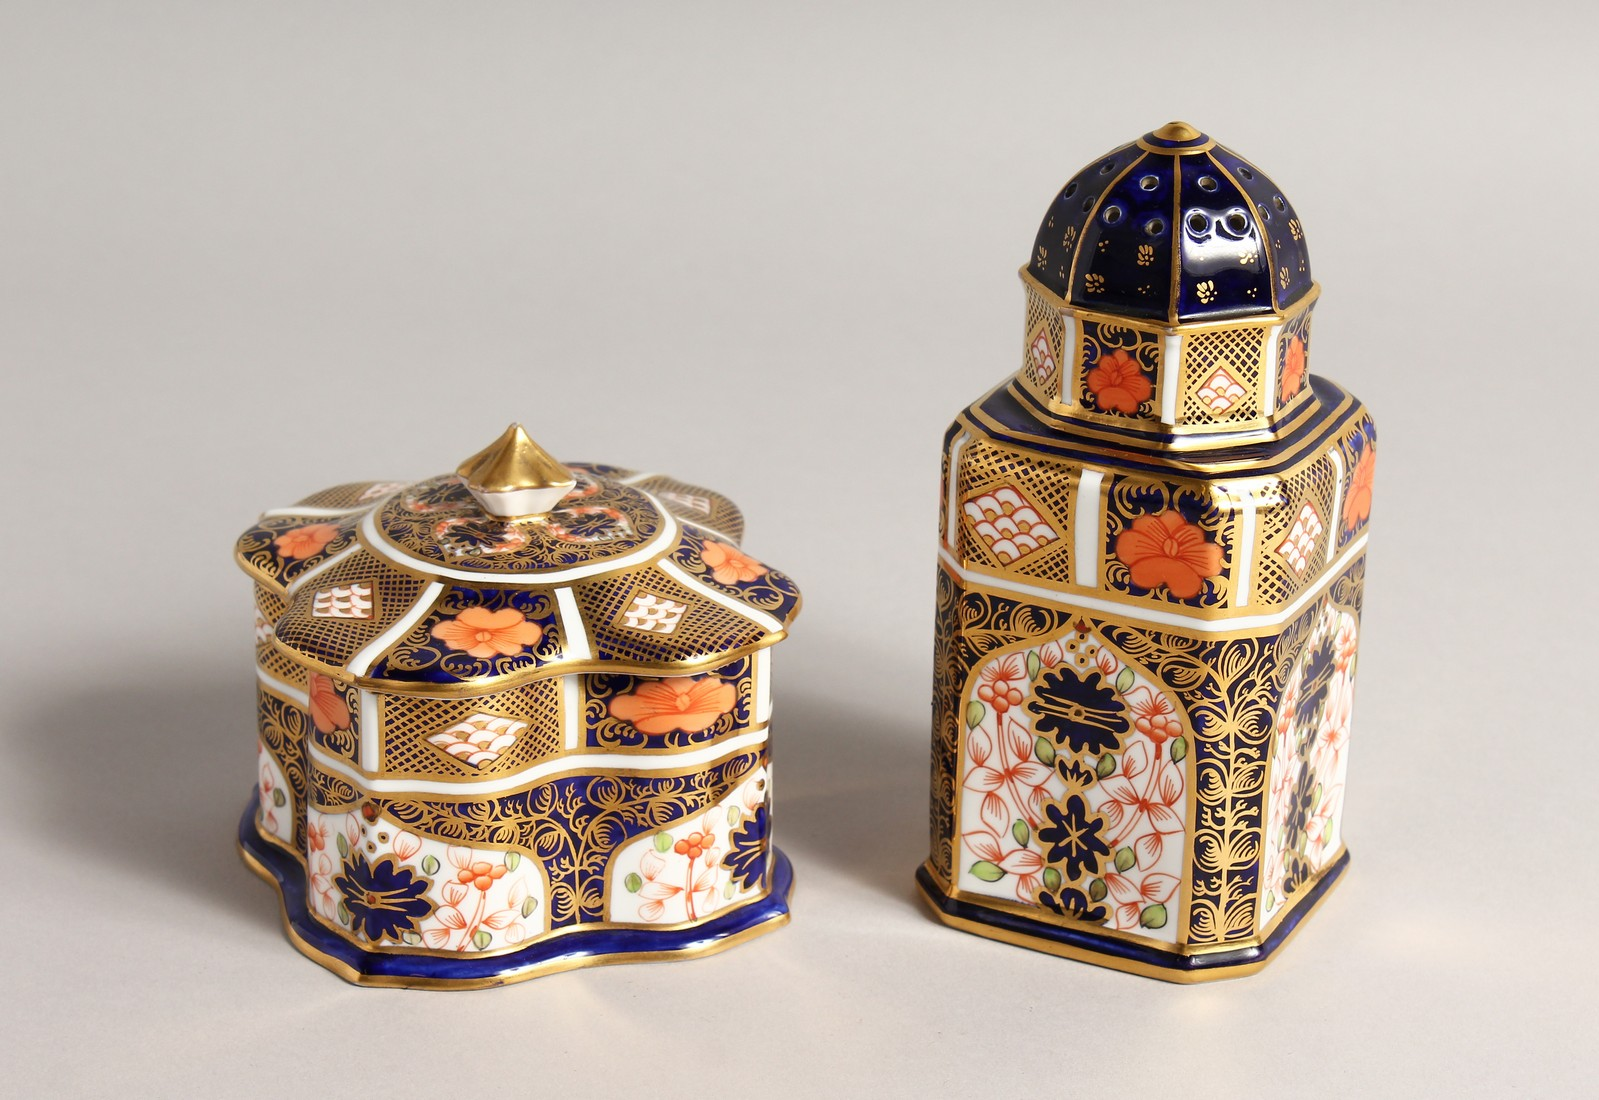 A ROYAL CROWN DERBY JAPAN PATTERN SQUARE SUGAR SIFTER, No. 1128. 6ins high and a SQUARE SUPERB BOX